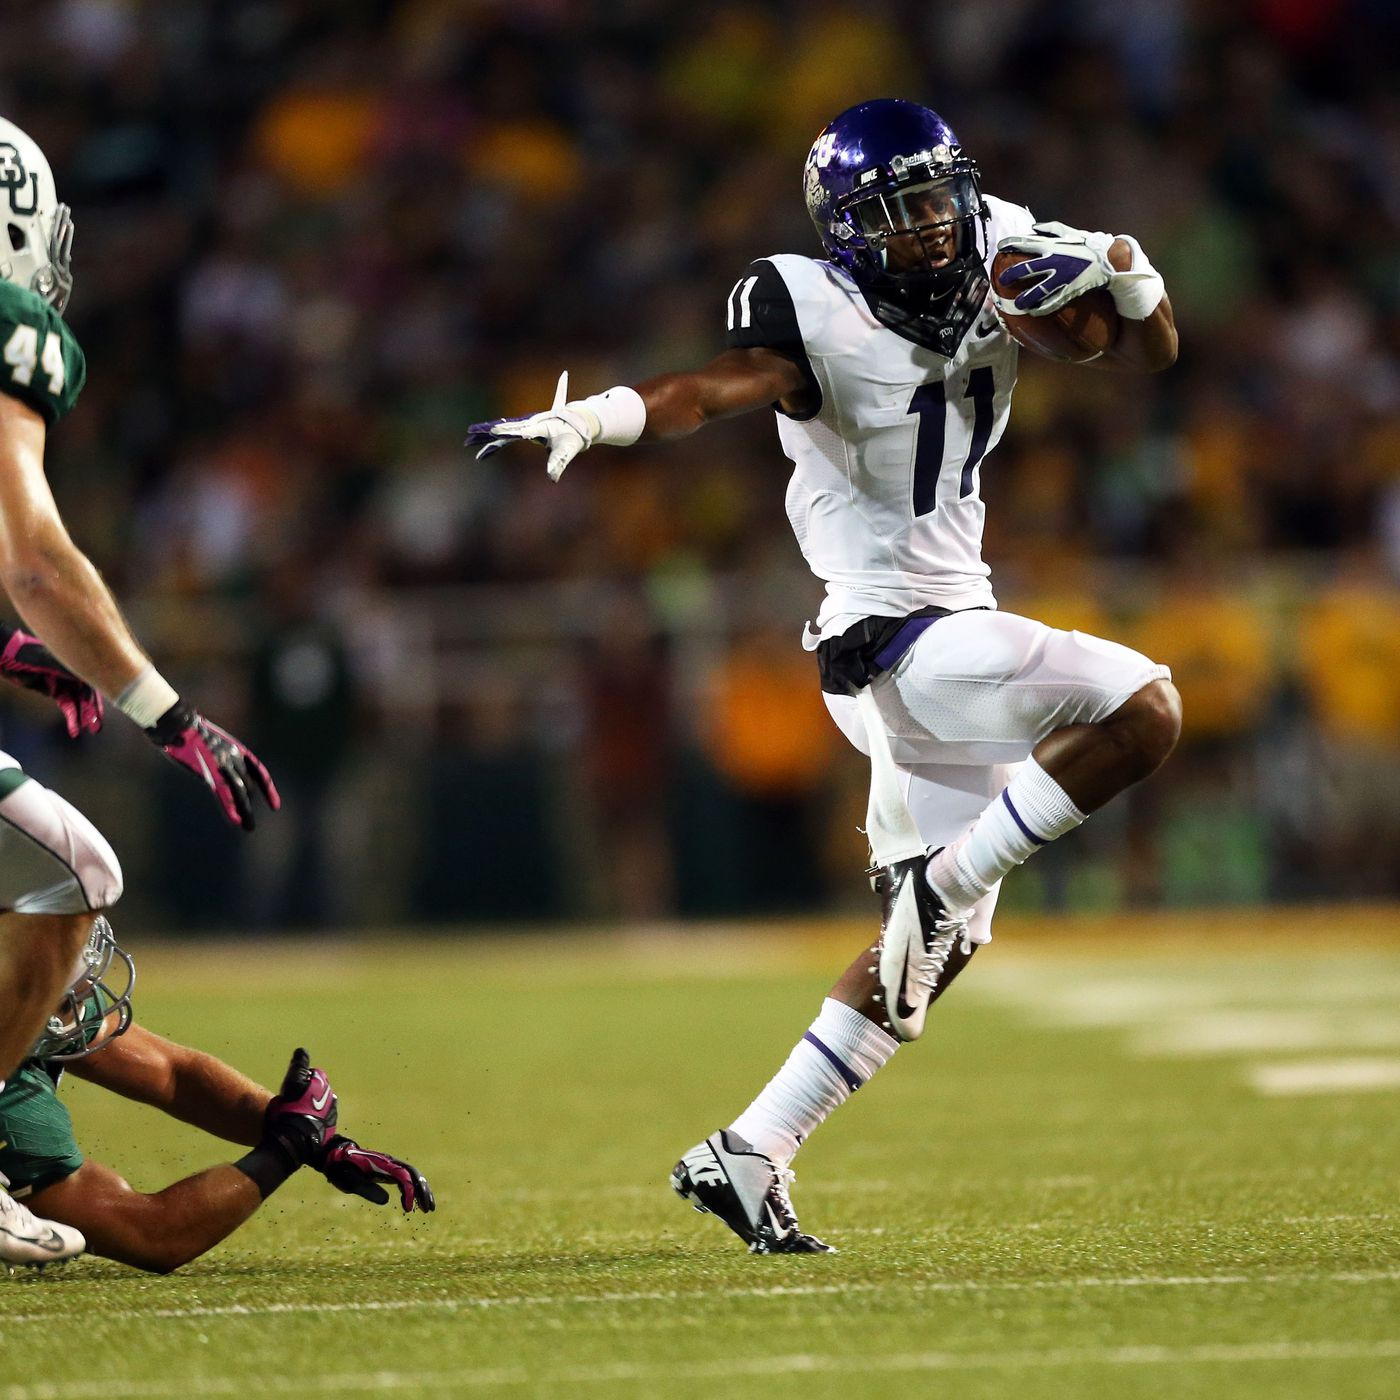 Watch It Again  2011 TCU at Baylor - Frogs O  War 4bb406d53